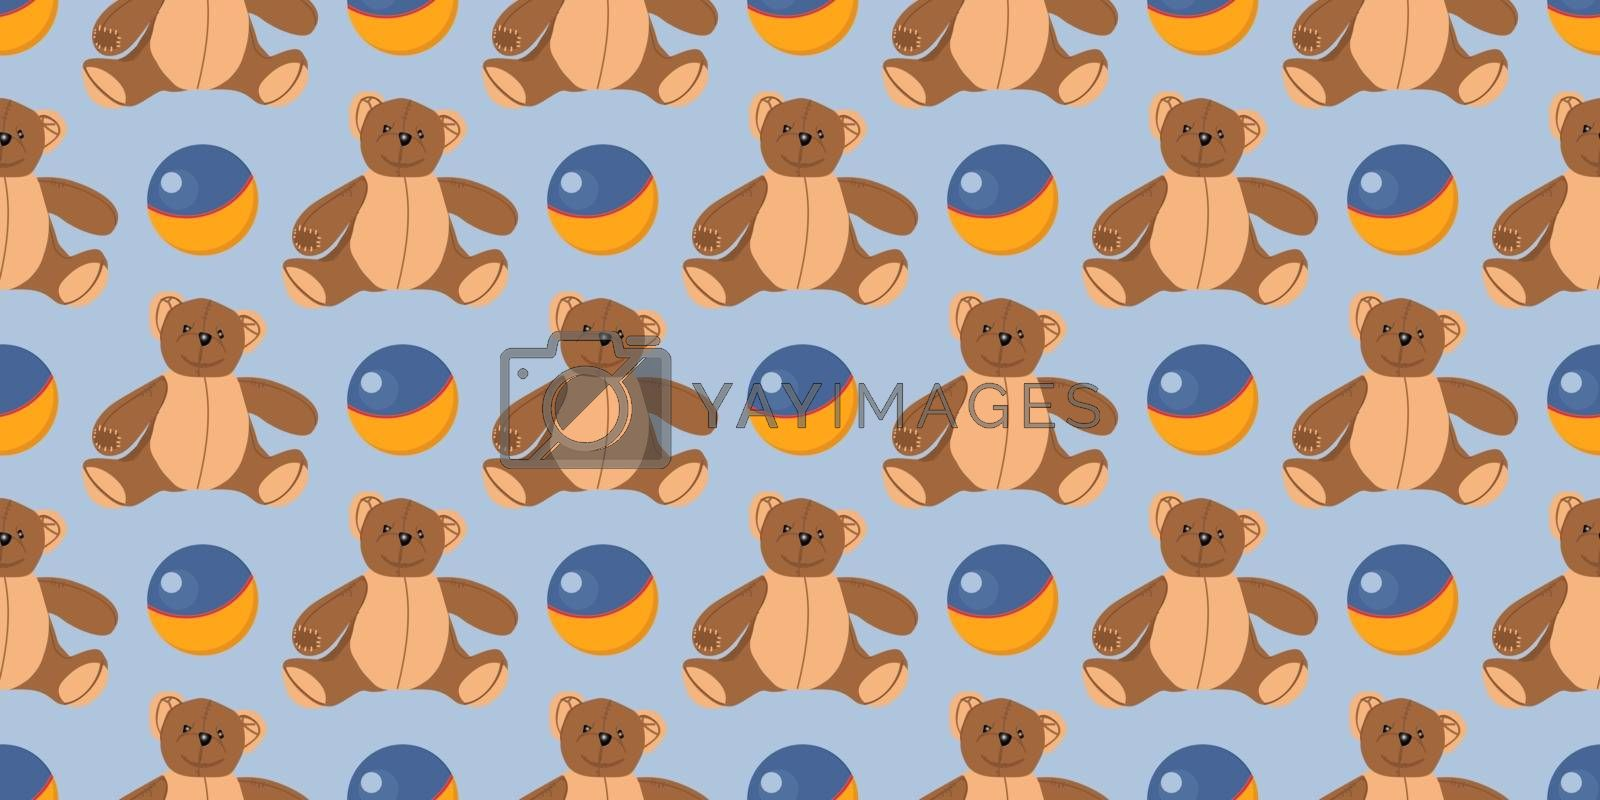 Children s seamless pattern. The ball for the game. Children s textiles and wrapping paper. Teddy bear toy